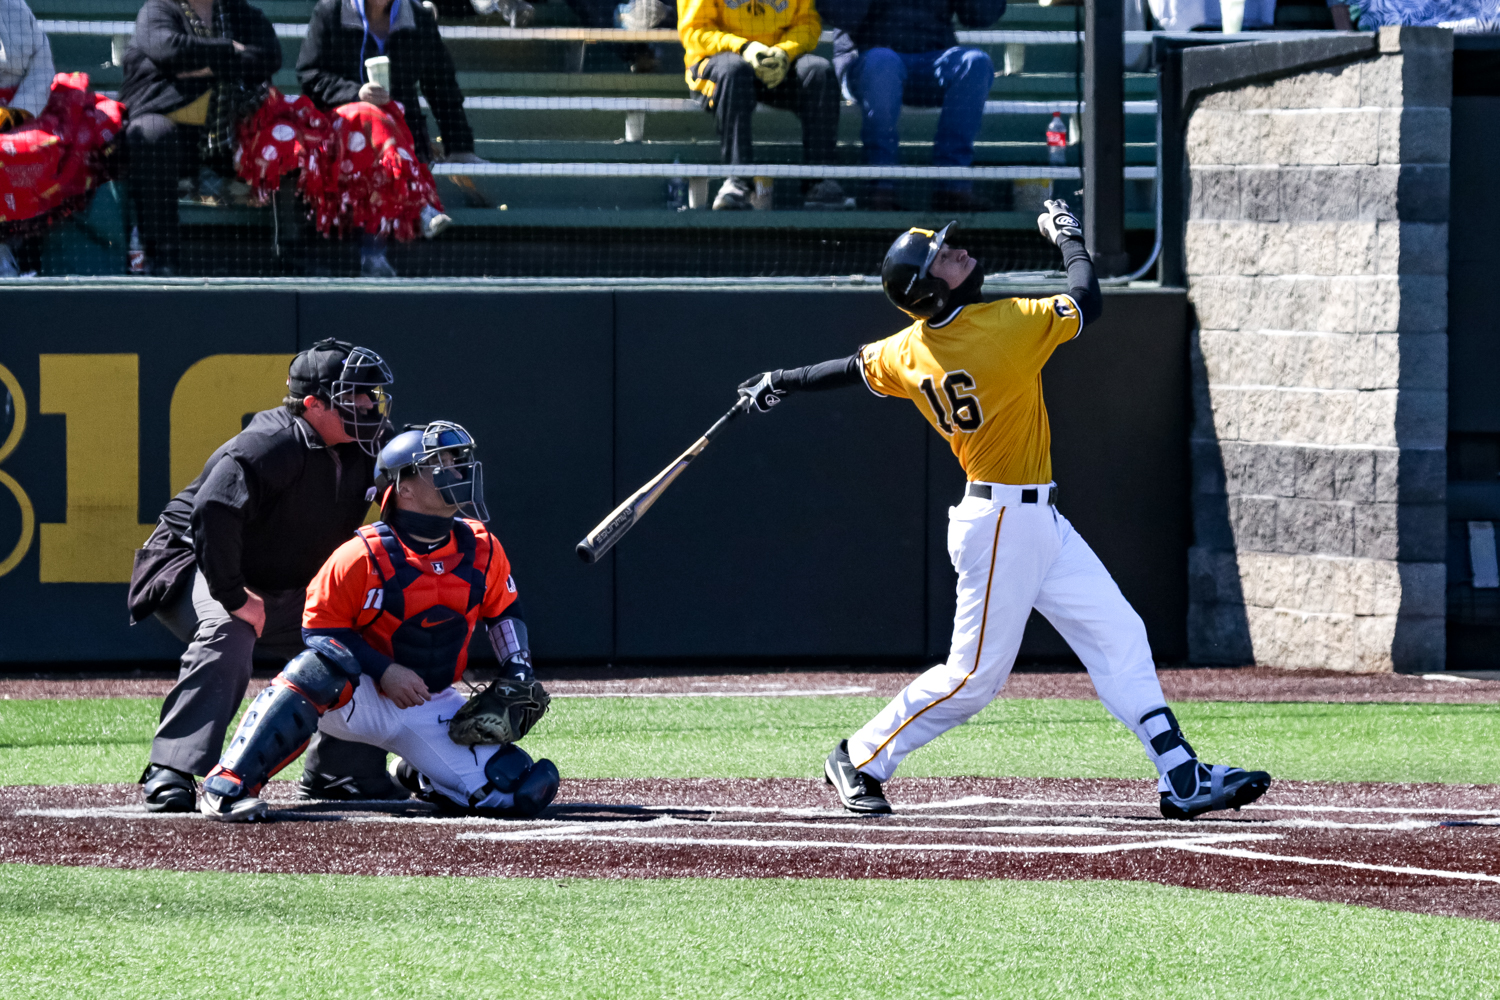 Iowa's Tanner Wetrich pops the ball up during a baseball game against the University of Illinois on Sunday, Mar. 31, 2019. The Hawkeyes defeated the Illini 3-1.